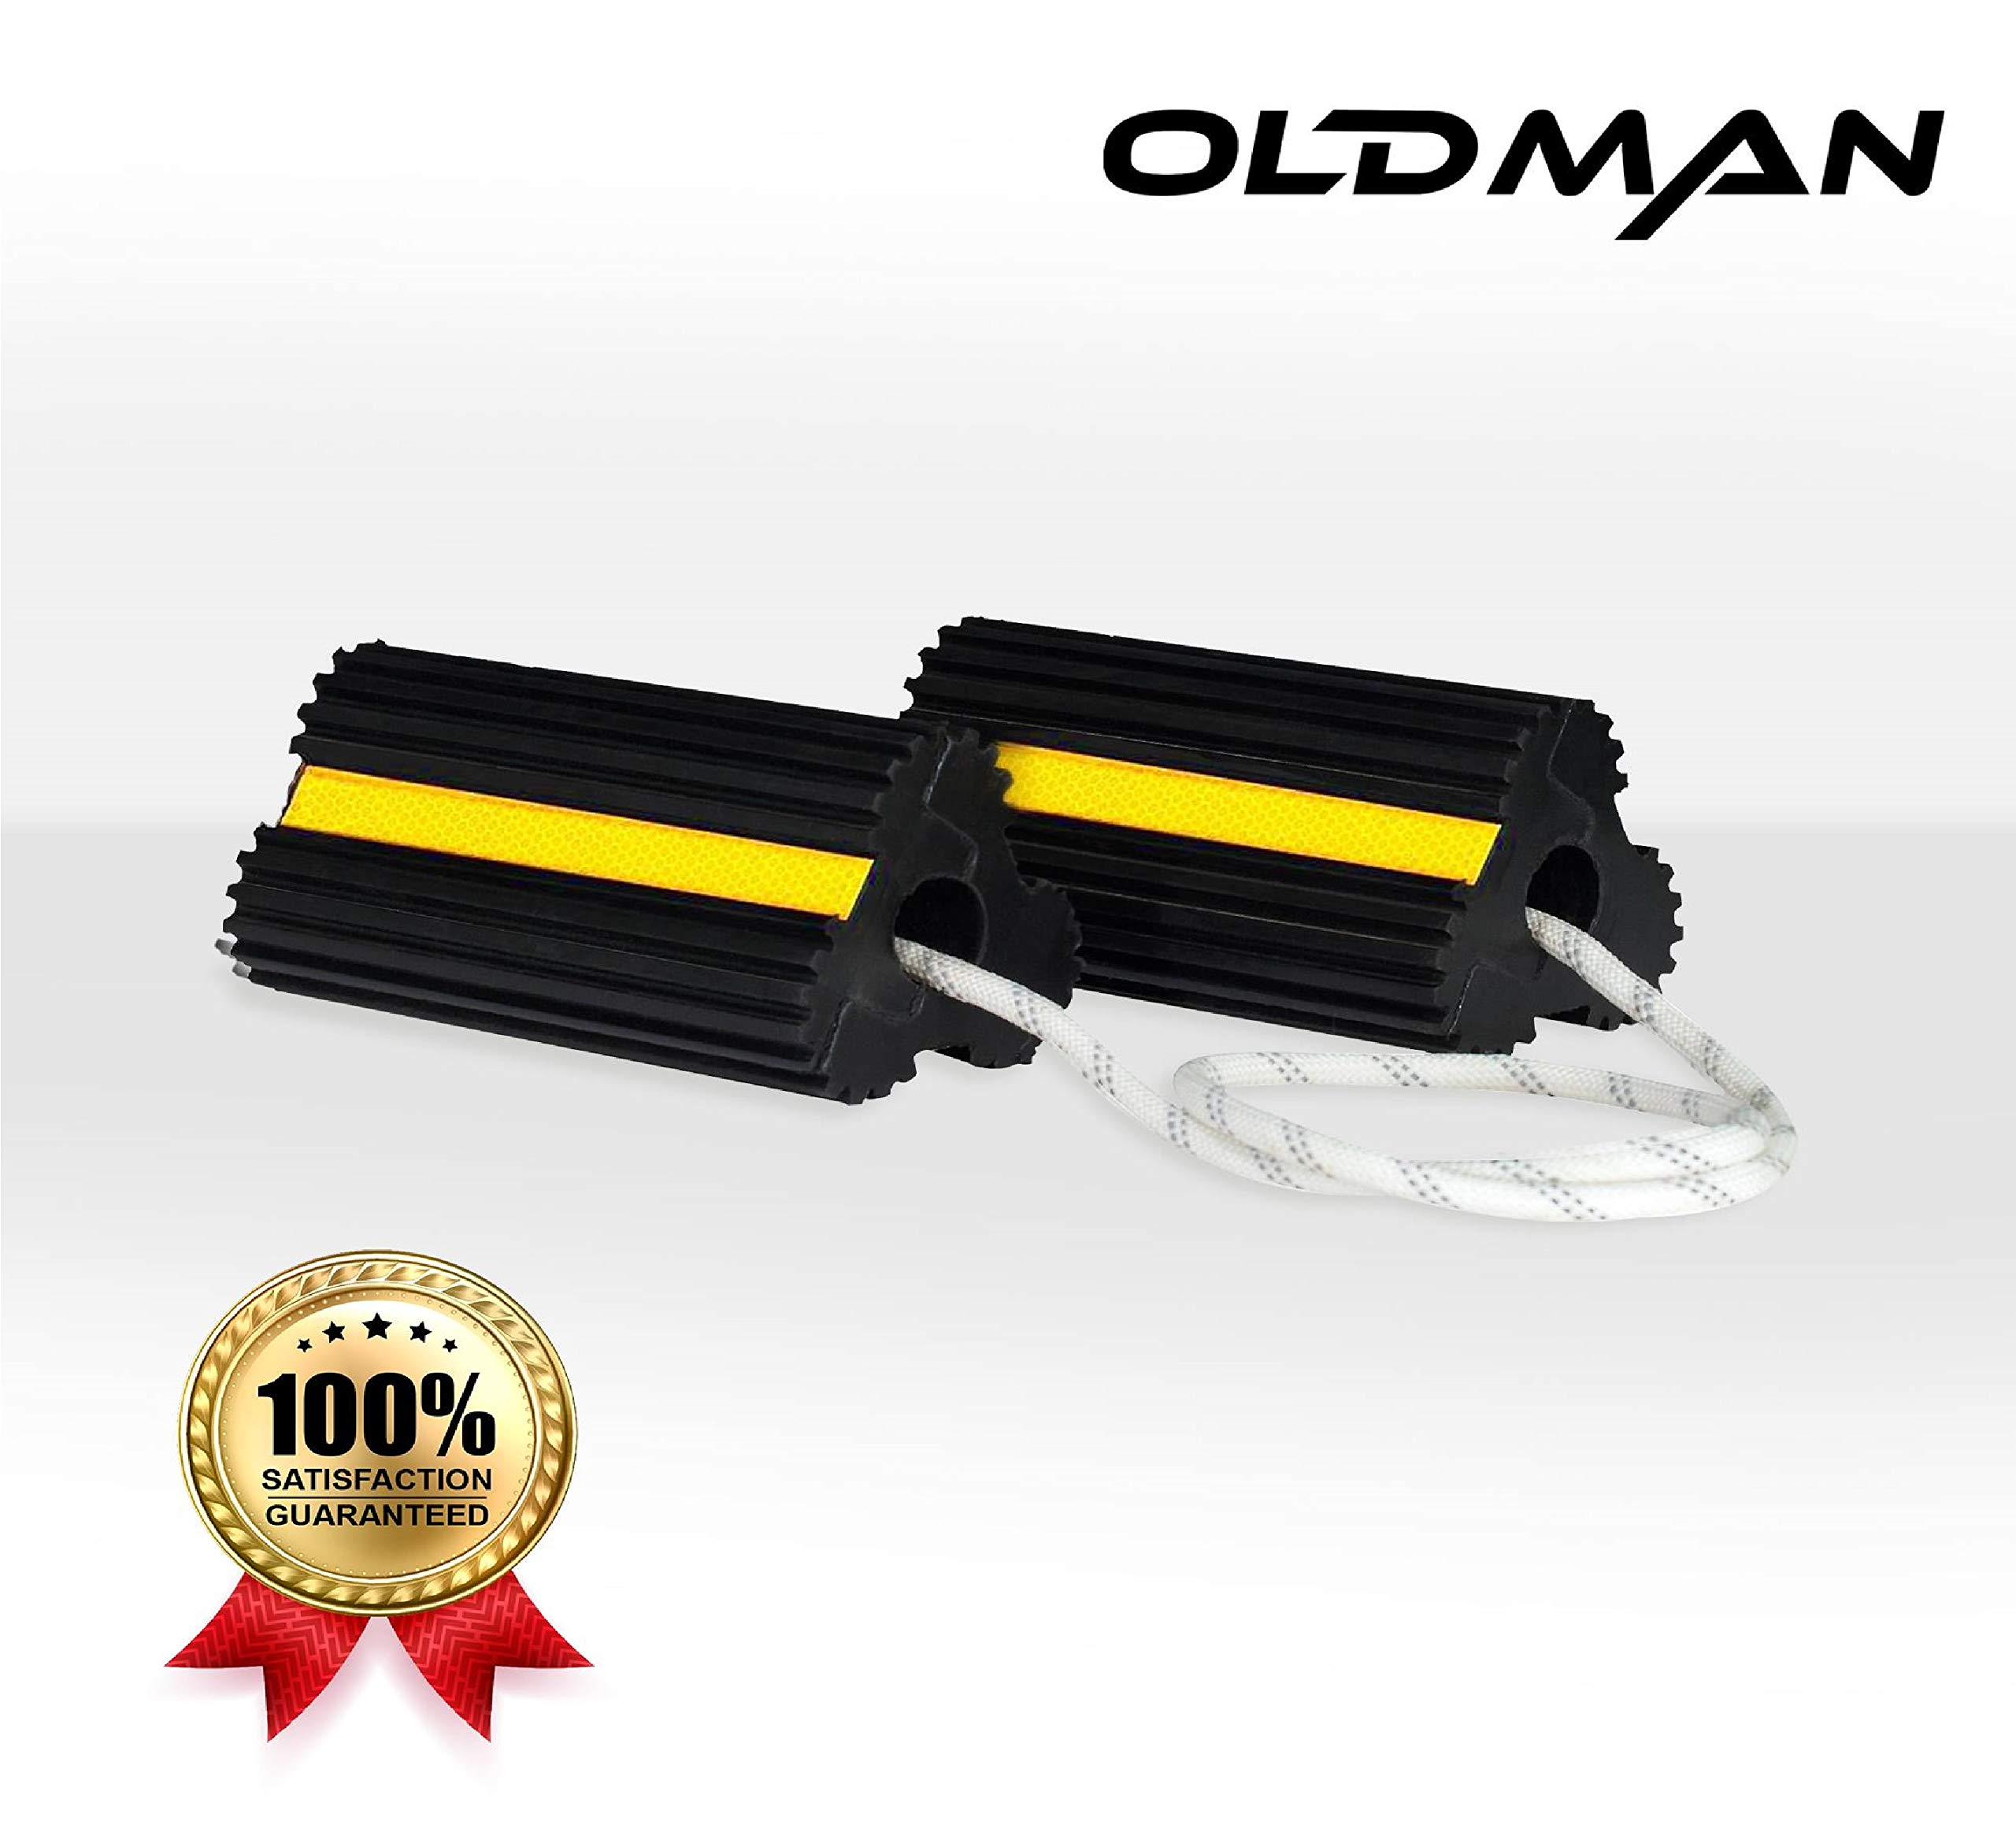 Oldman Rubber Wheel Chocks with Reflective Visibility | Personal or Commercial Use Rear Back Stop | Cars, Trailer, Aircraft, Construction Equipment | Non-Slip, Heavy Duty by Oldman